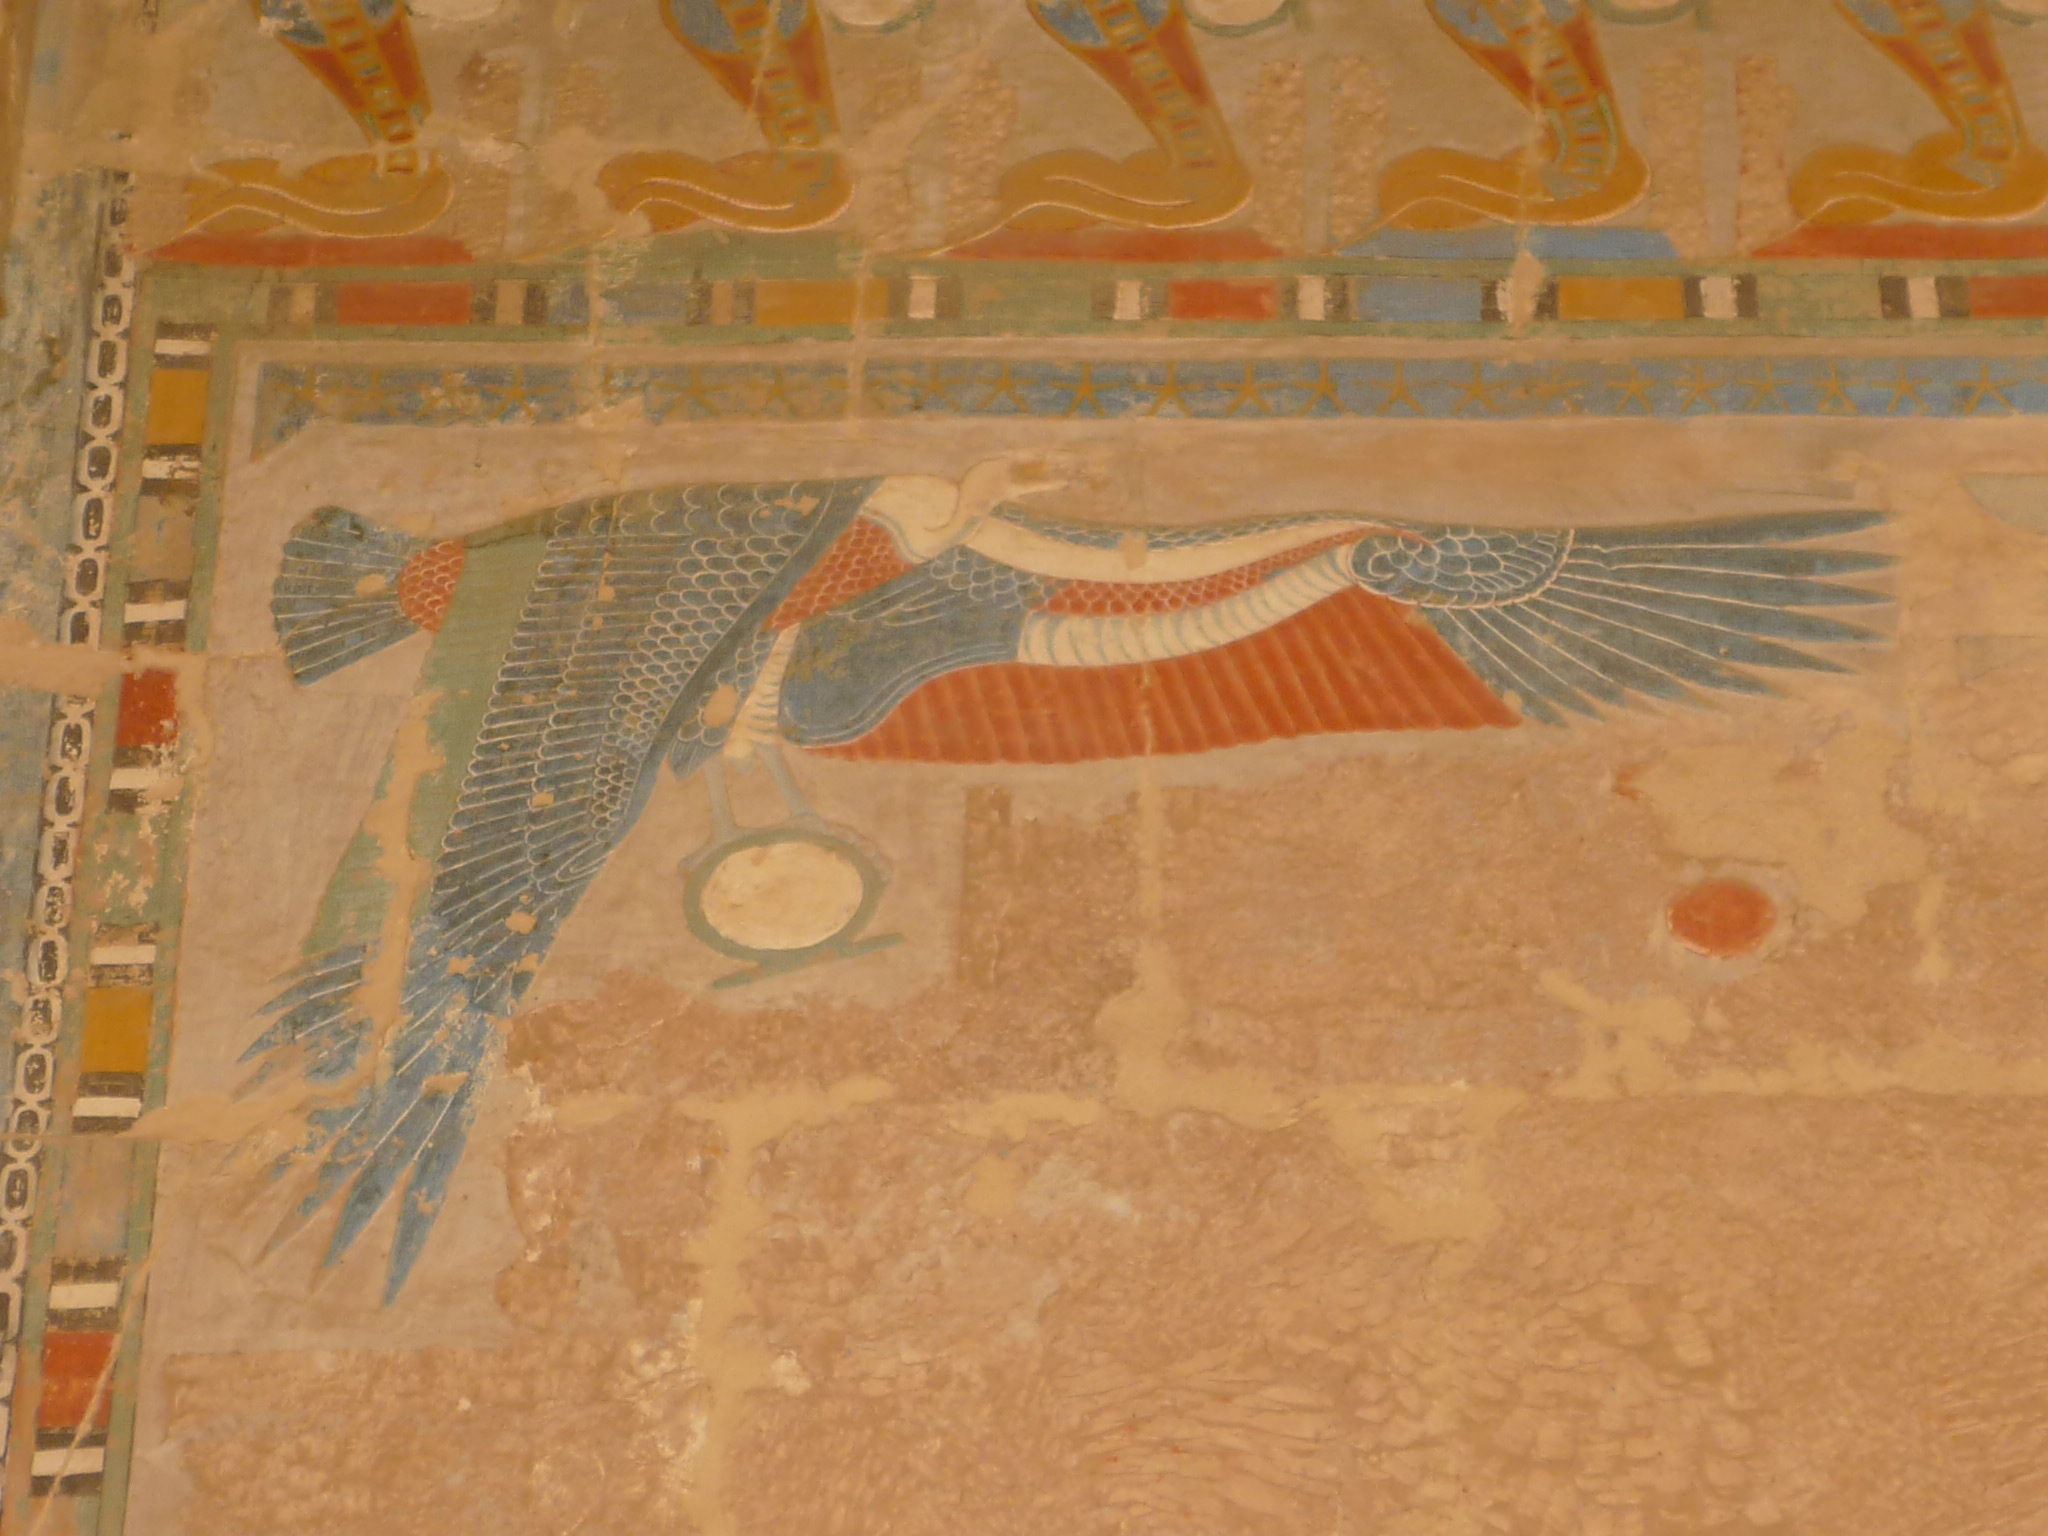 http://upload.wikimedia.org/wikipedia/commons/7/7e/Hatshepsut_temple37.JPG